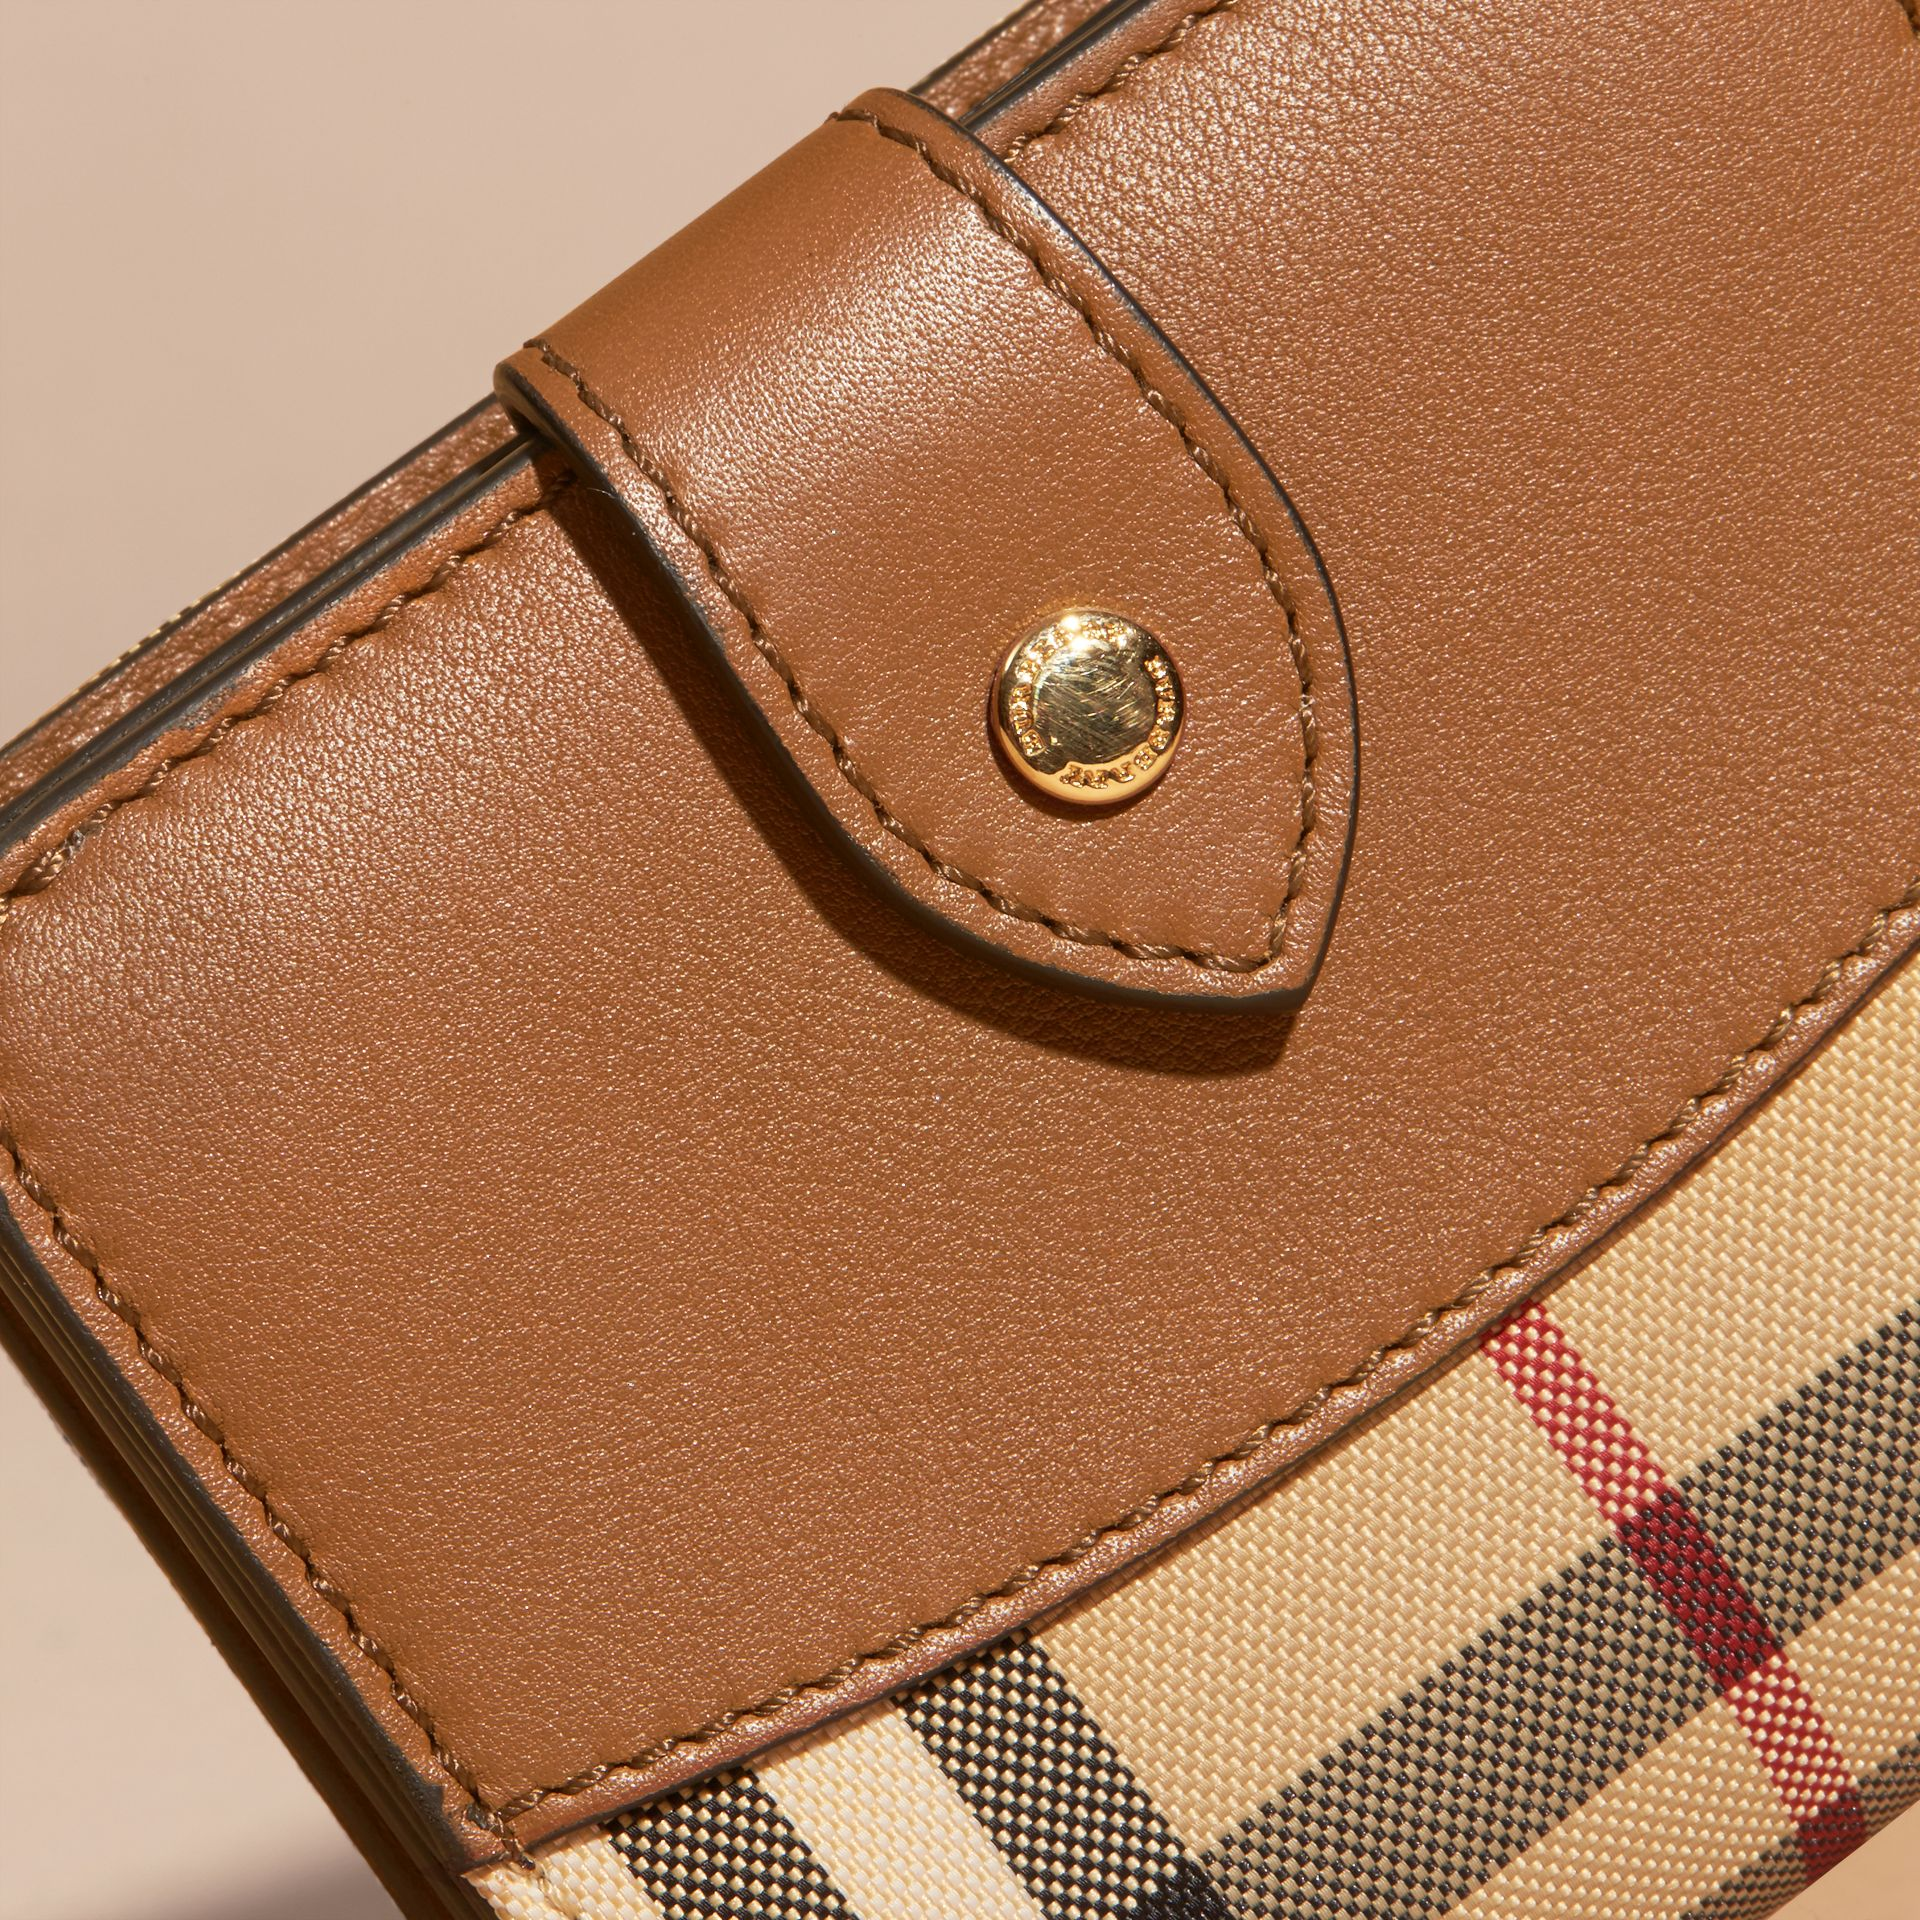 Tan Horseferry Check and Leather Wallet Tan - gallery image 2